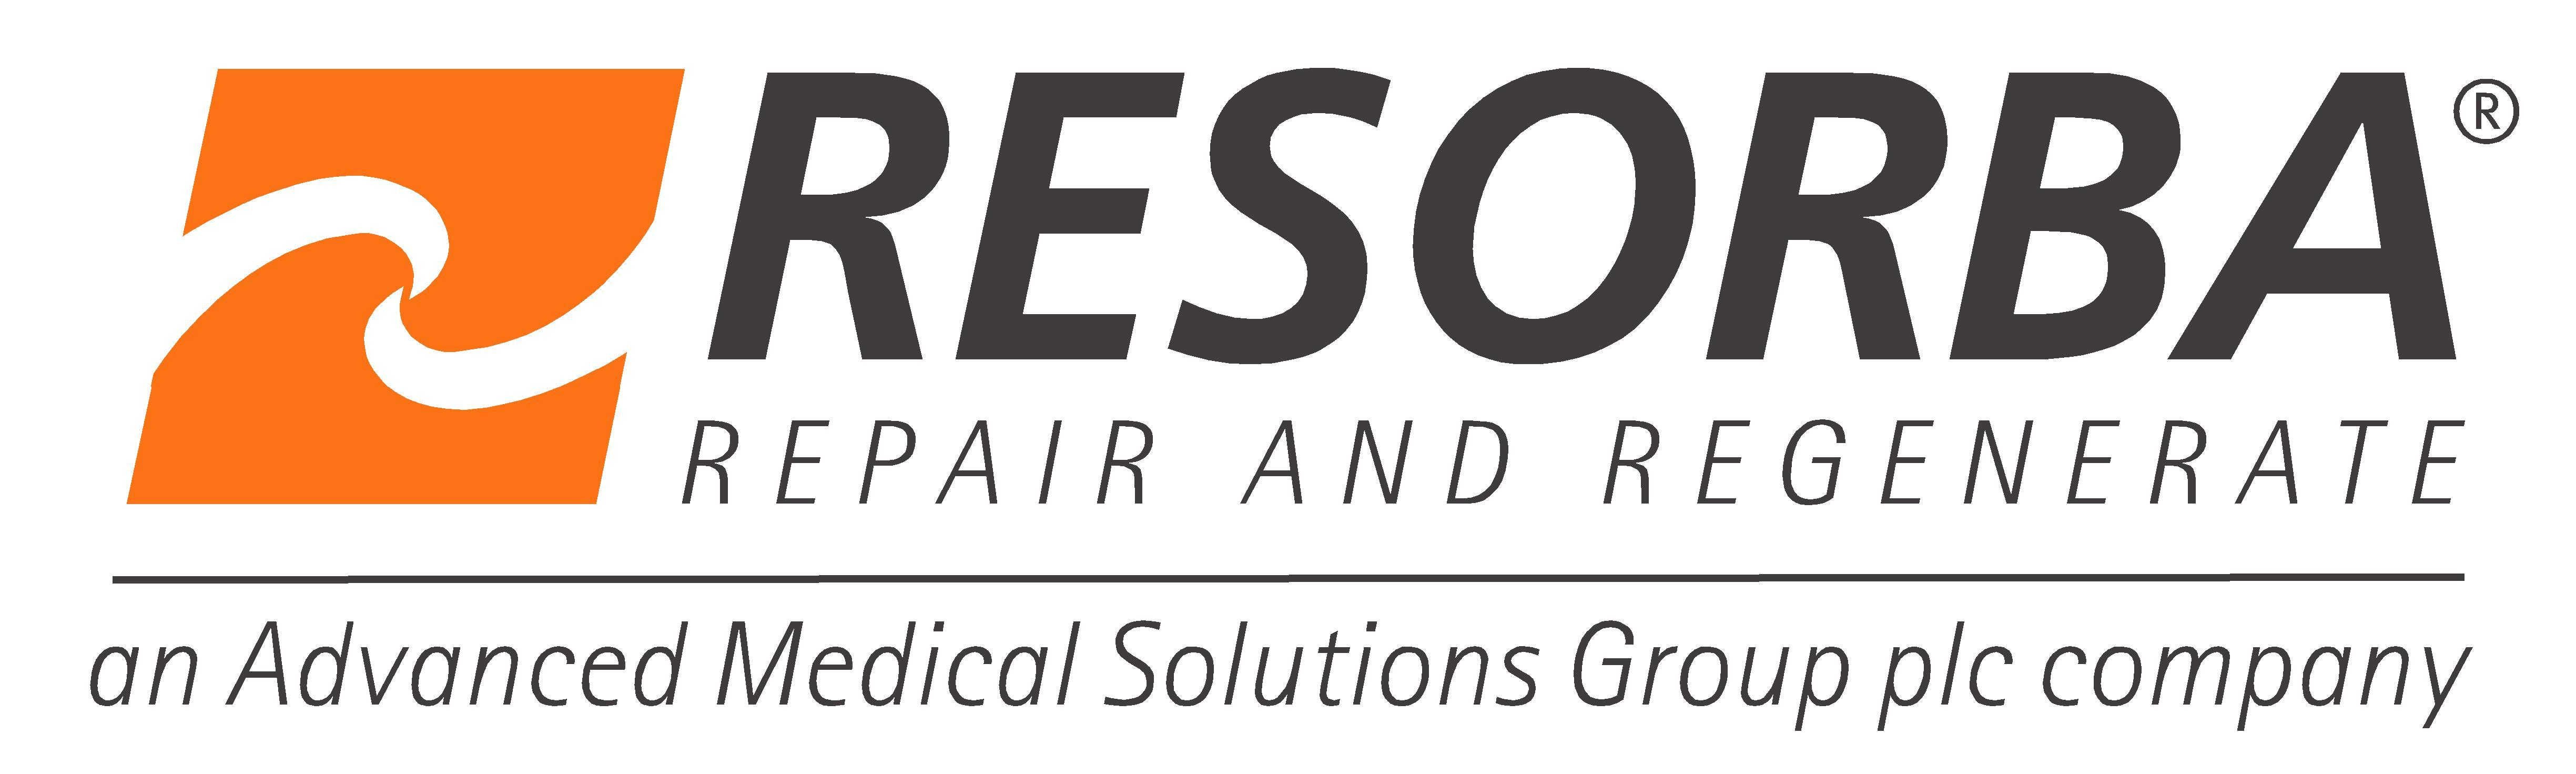 Resorba Medical GmbH